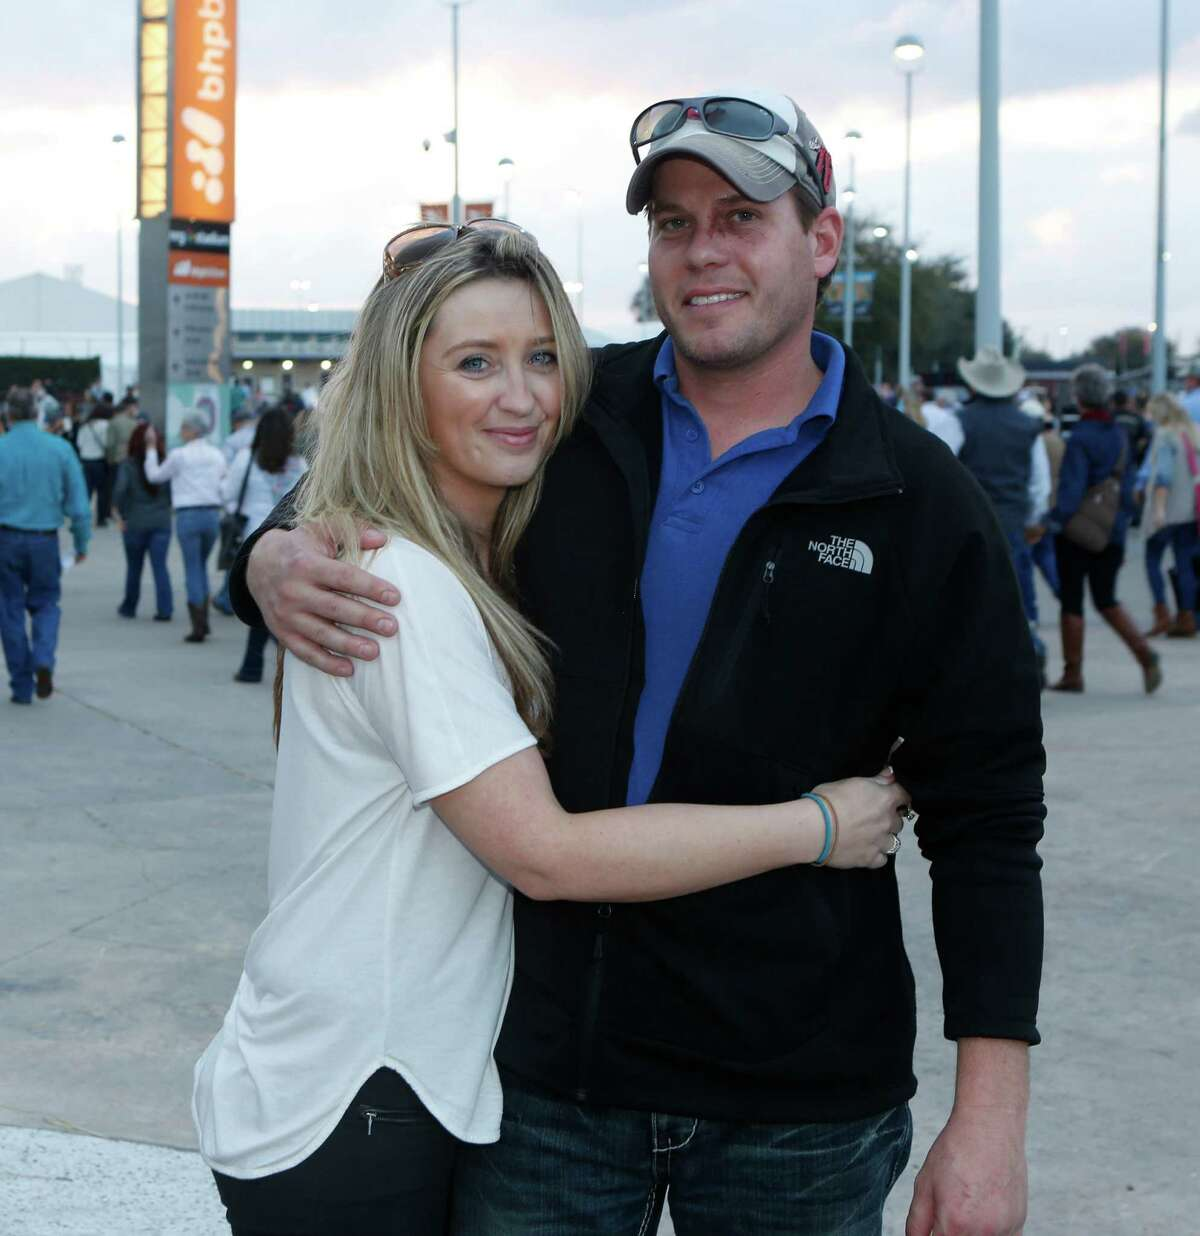 Rodeo fans at the Eric Church concert Tuesday, March 3, 2015.